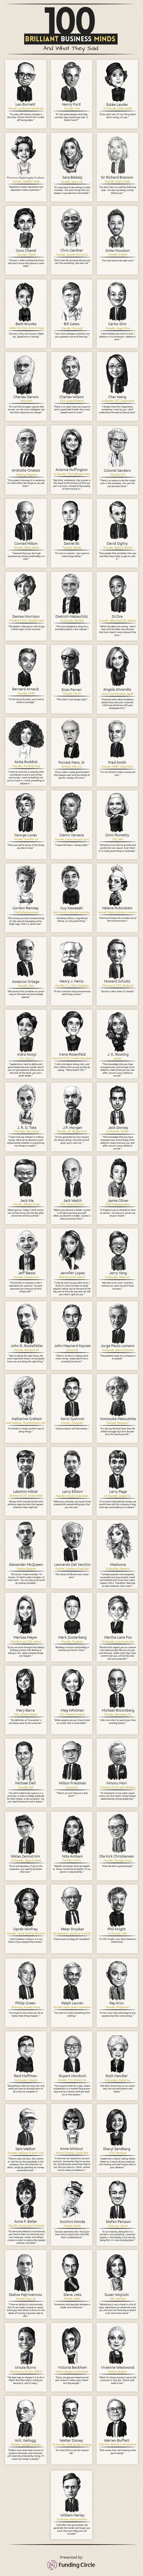 100 Inspirational Quotes from the World's Best Business Leaders [Infographic] | Inc.com